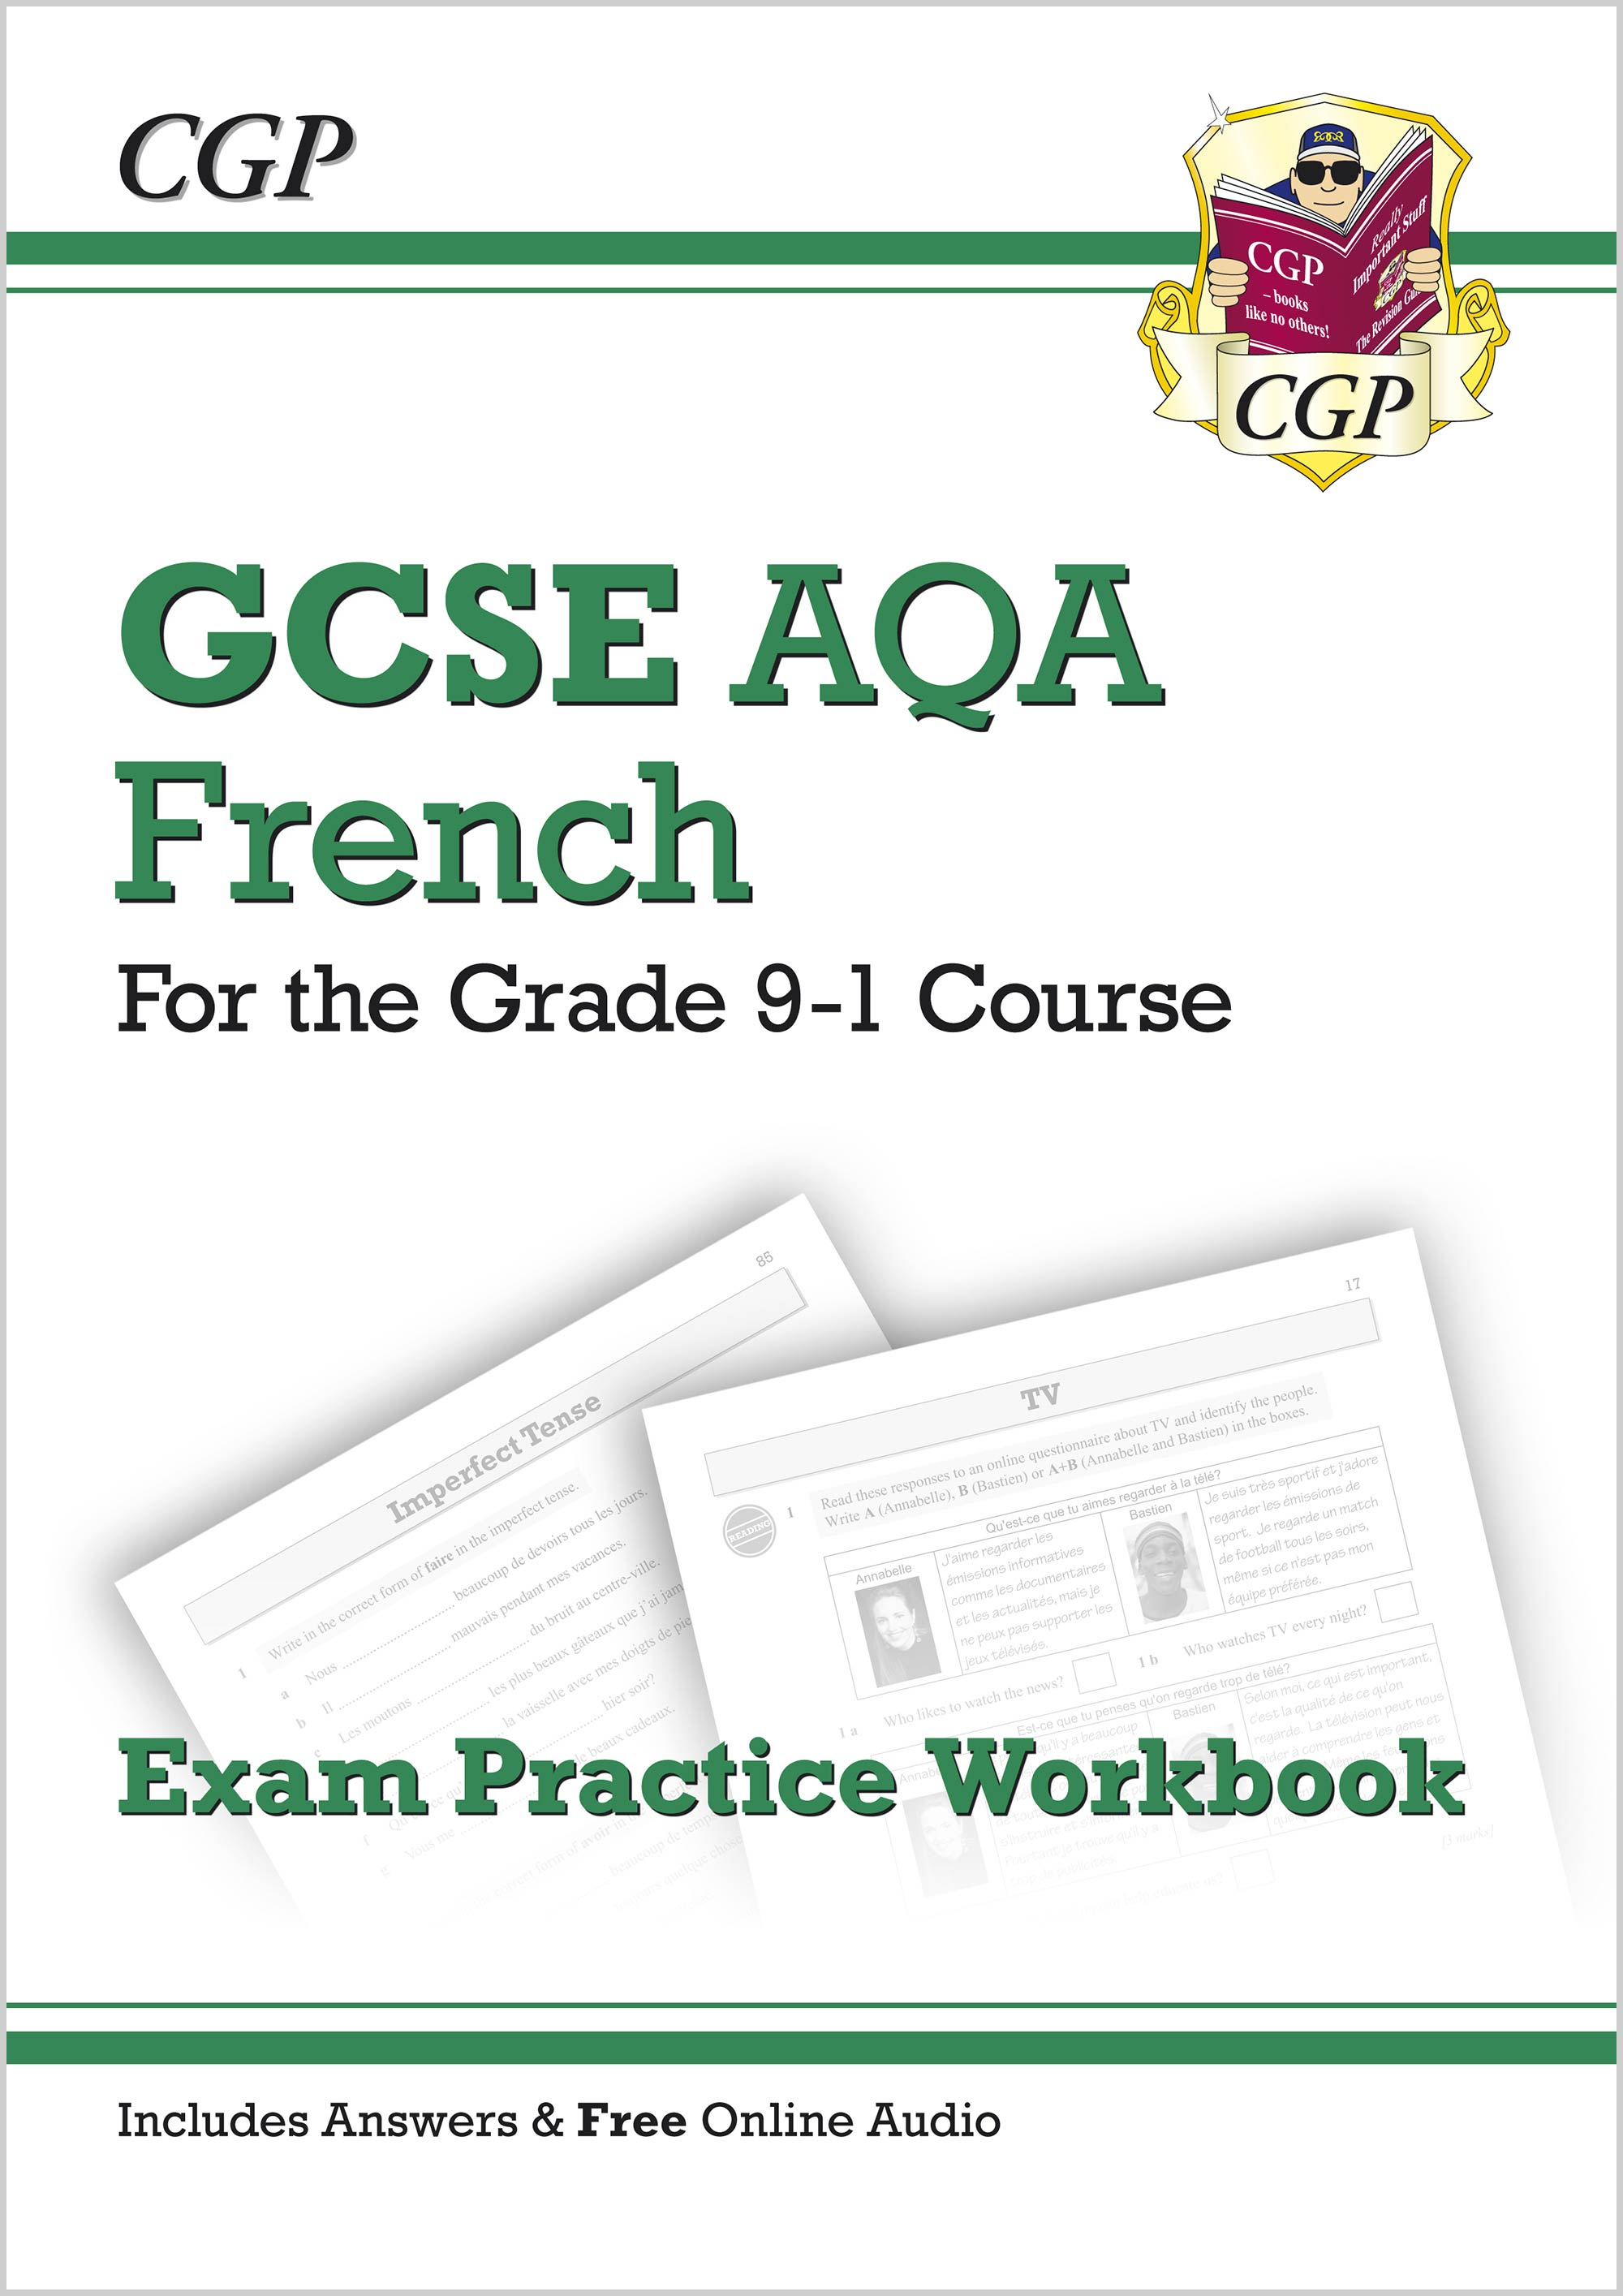 FAQ41 - New GCSE French AQA Exam Practice Workbook - for the Grade 9-1 Course (includes Answers)